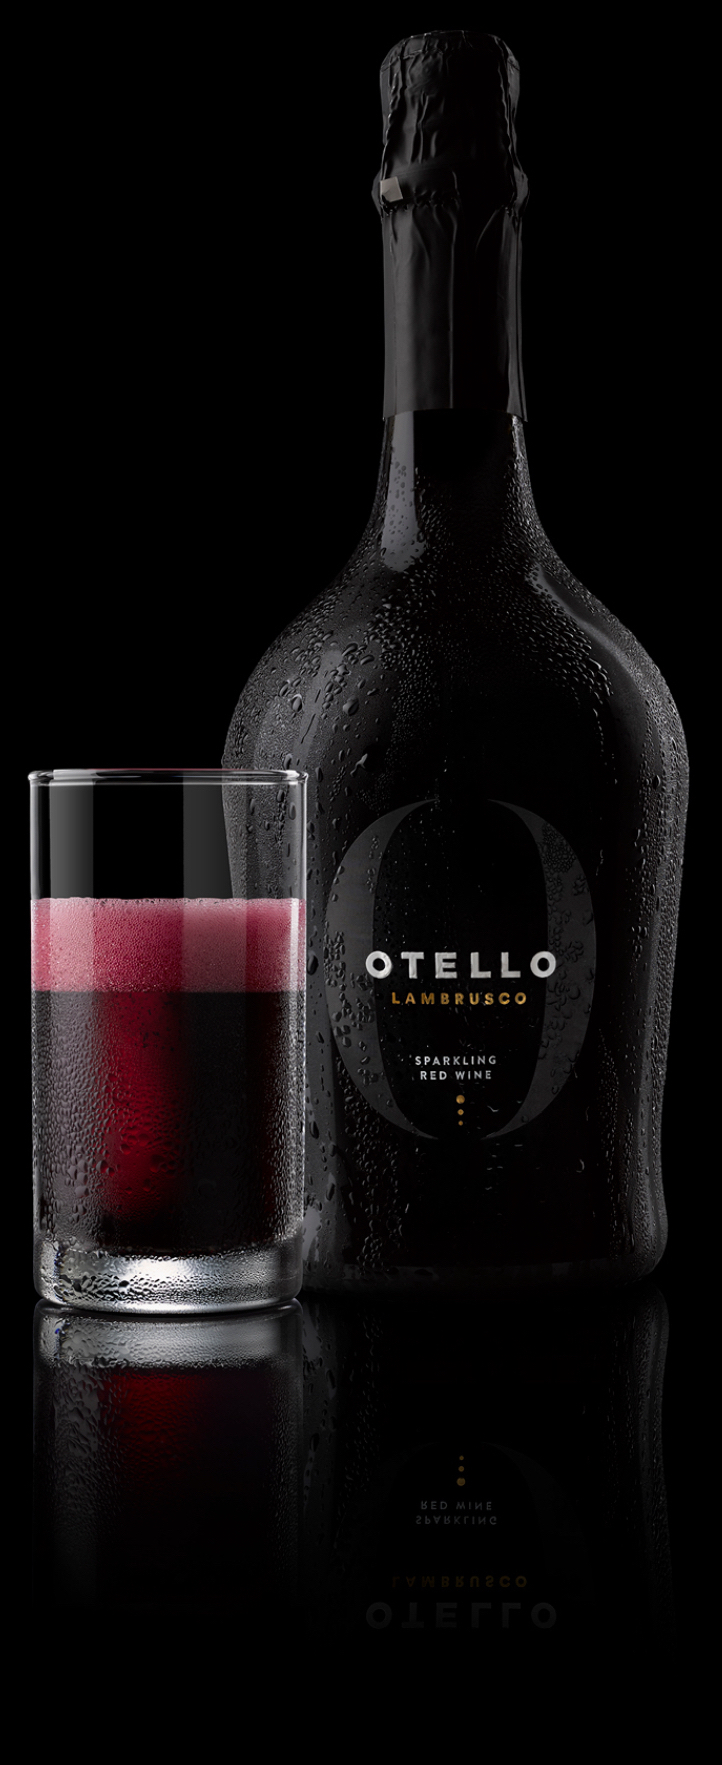 Otello Lambrusco bottle and glass